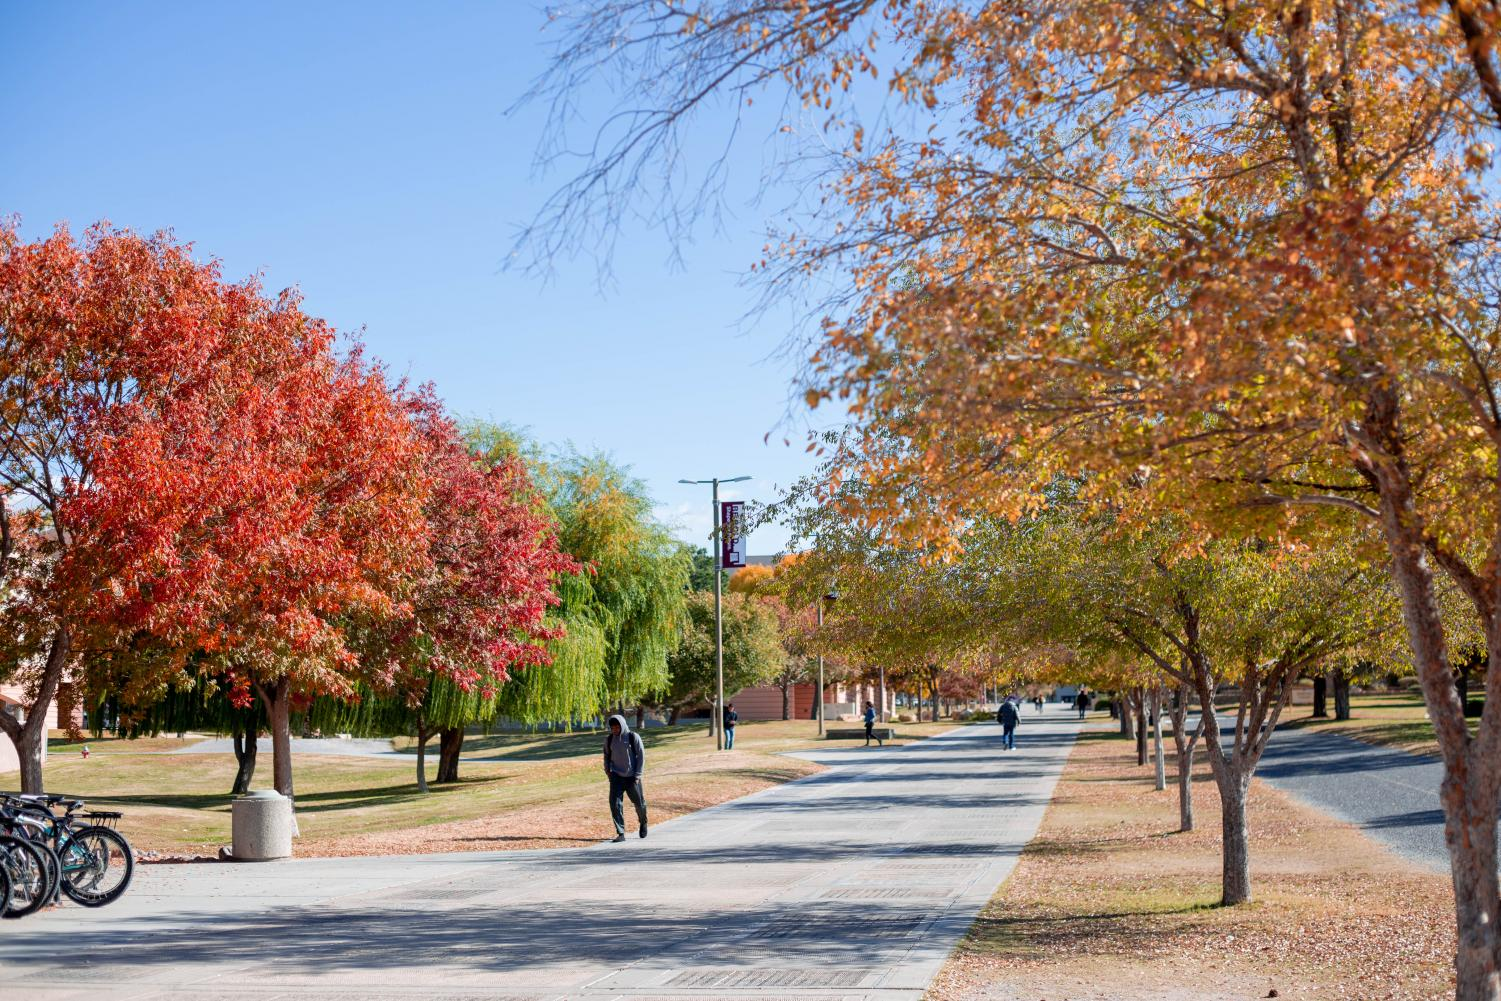 Campus begins to have a Fall look to it as students prepare to leave for Thanksgiving break.